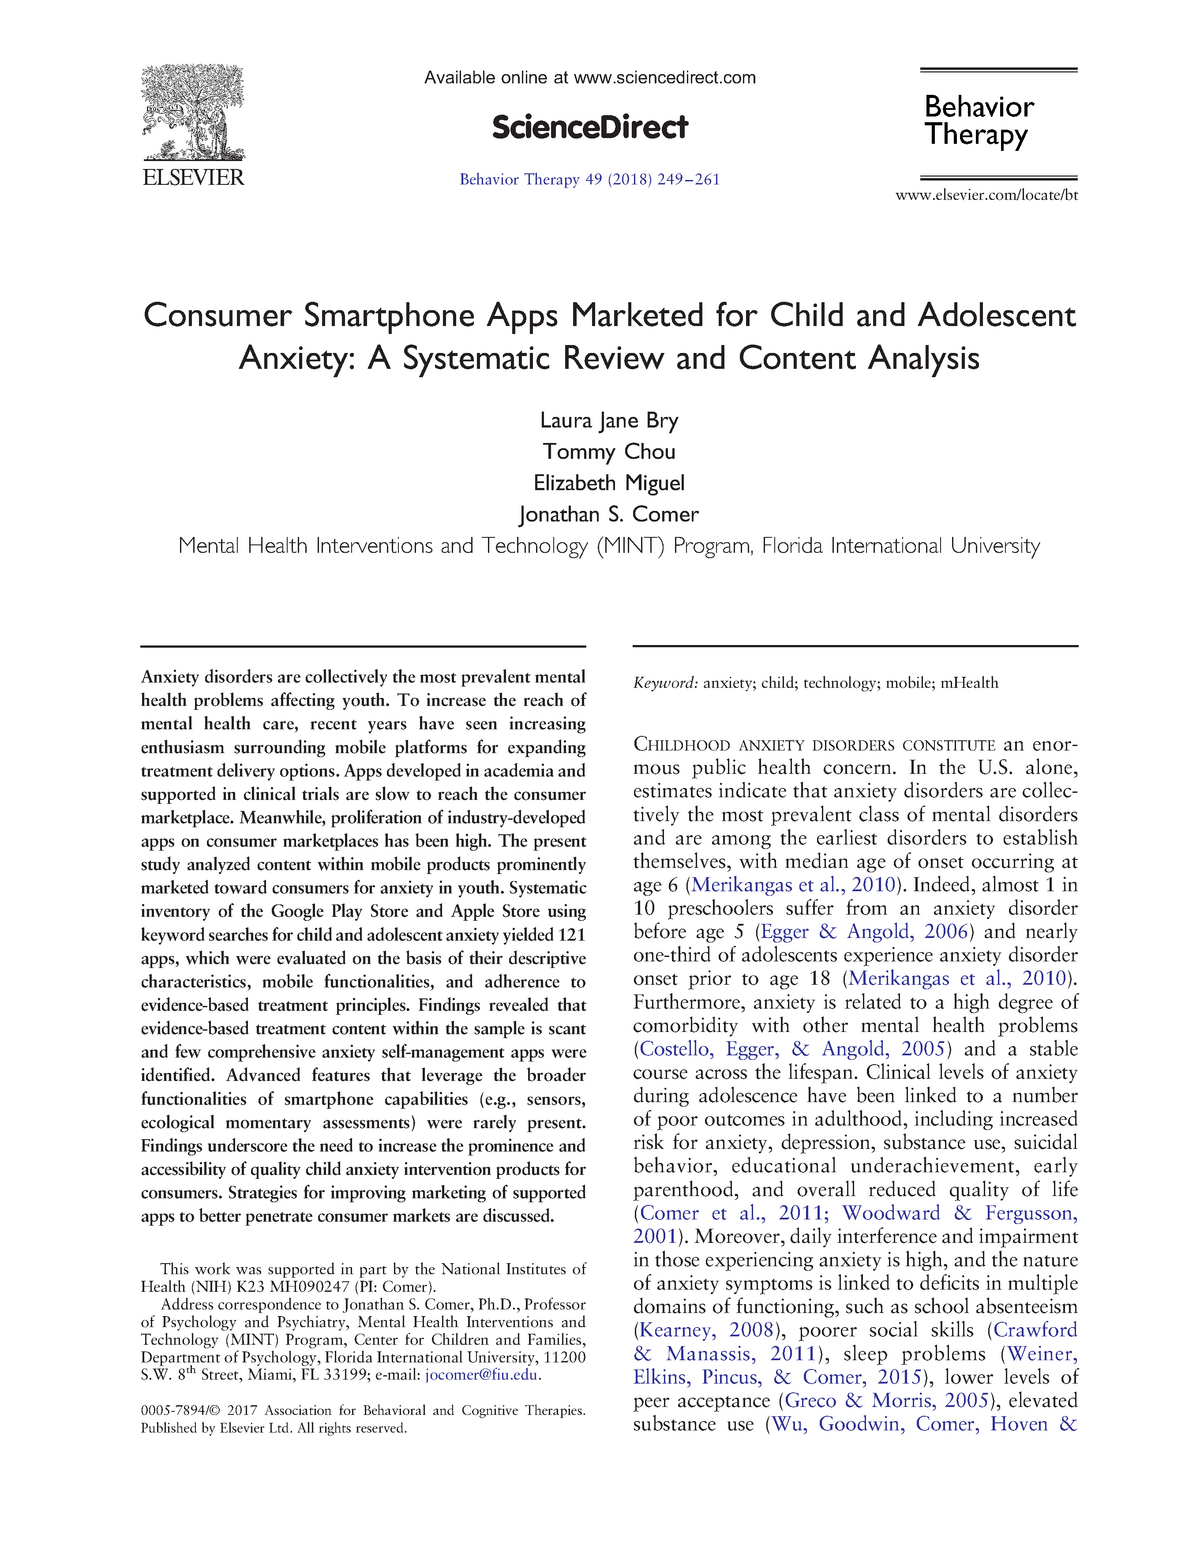 Consumer Smartphone Apps Marketed for Child and Adolescent